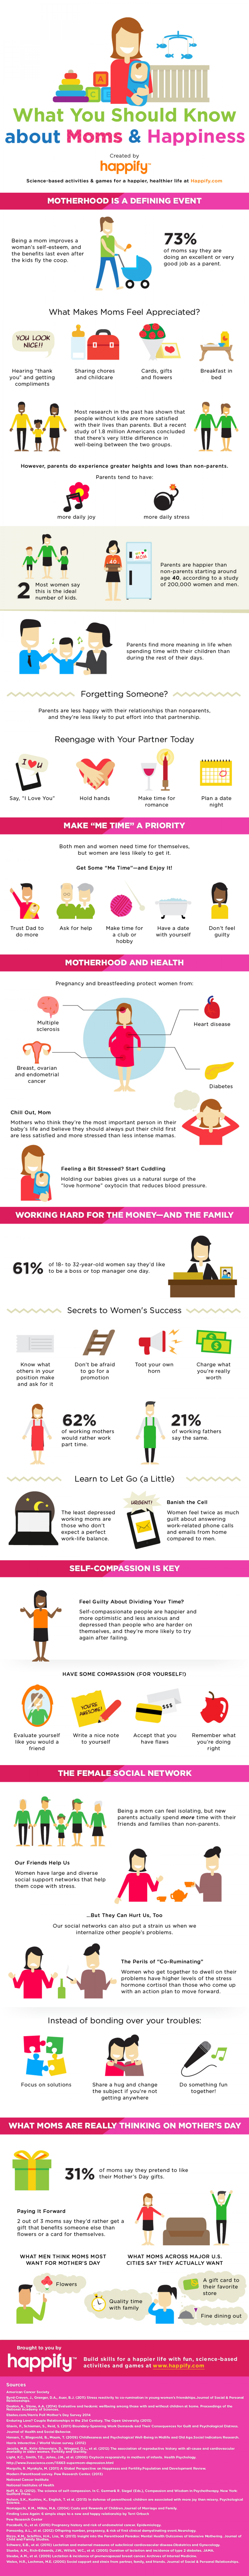 Moms and happiness Infographic